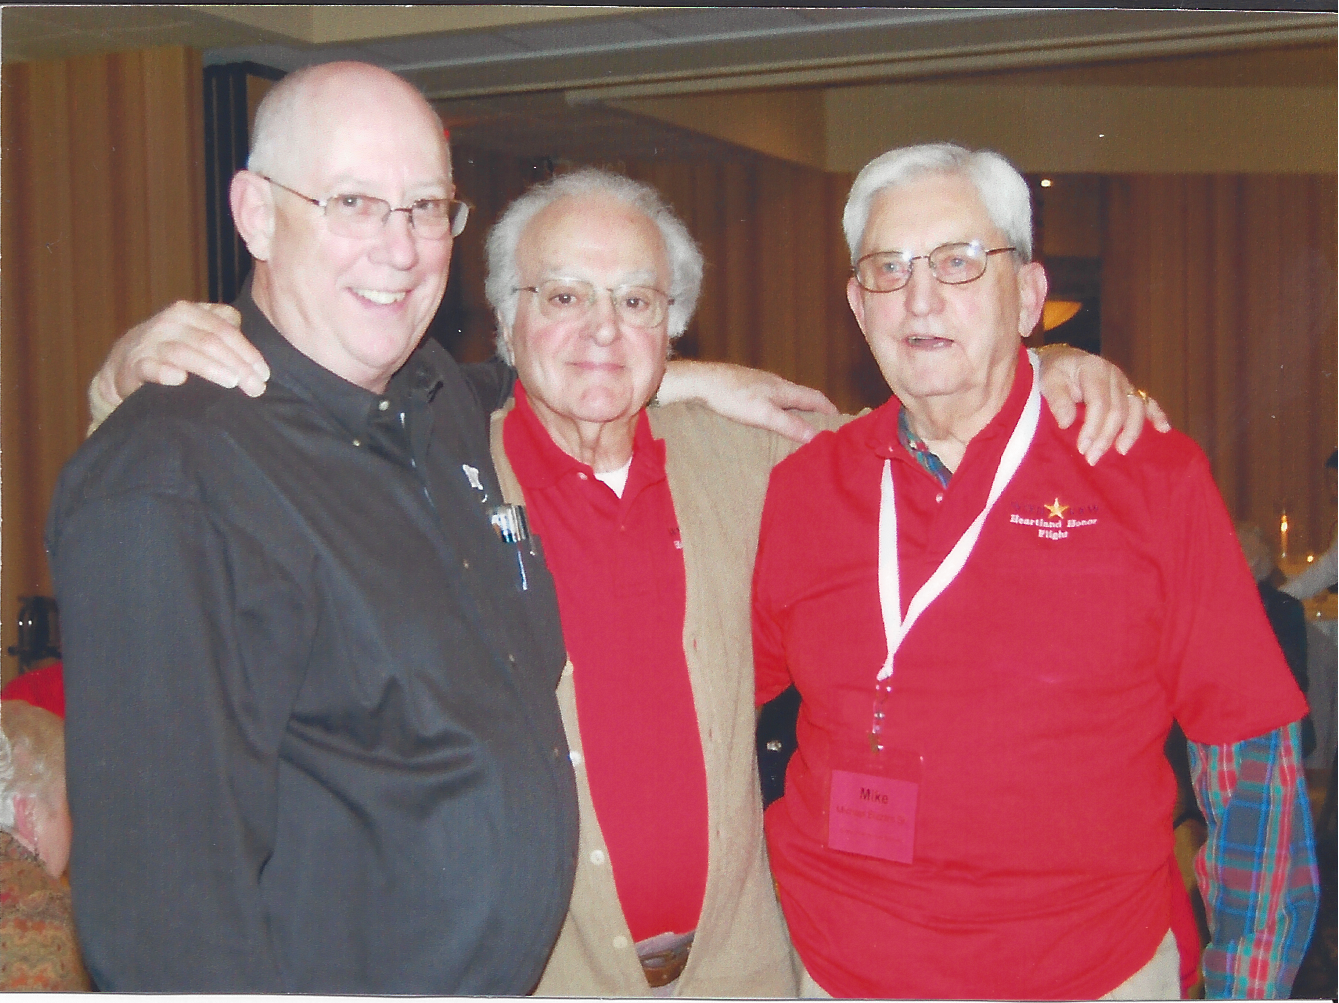 Left to right- John Liebsack, Subby Caniglia, Mike Bizzarri